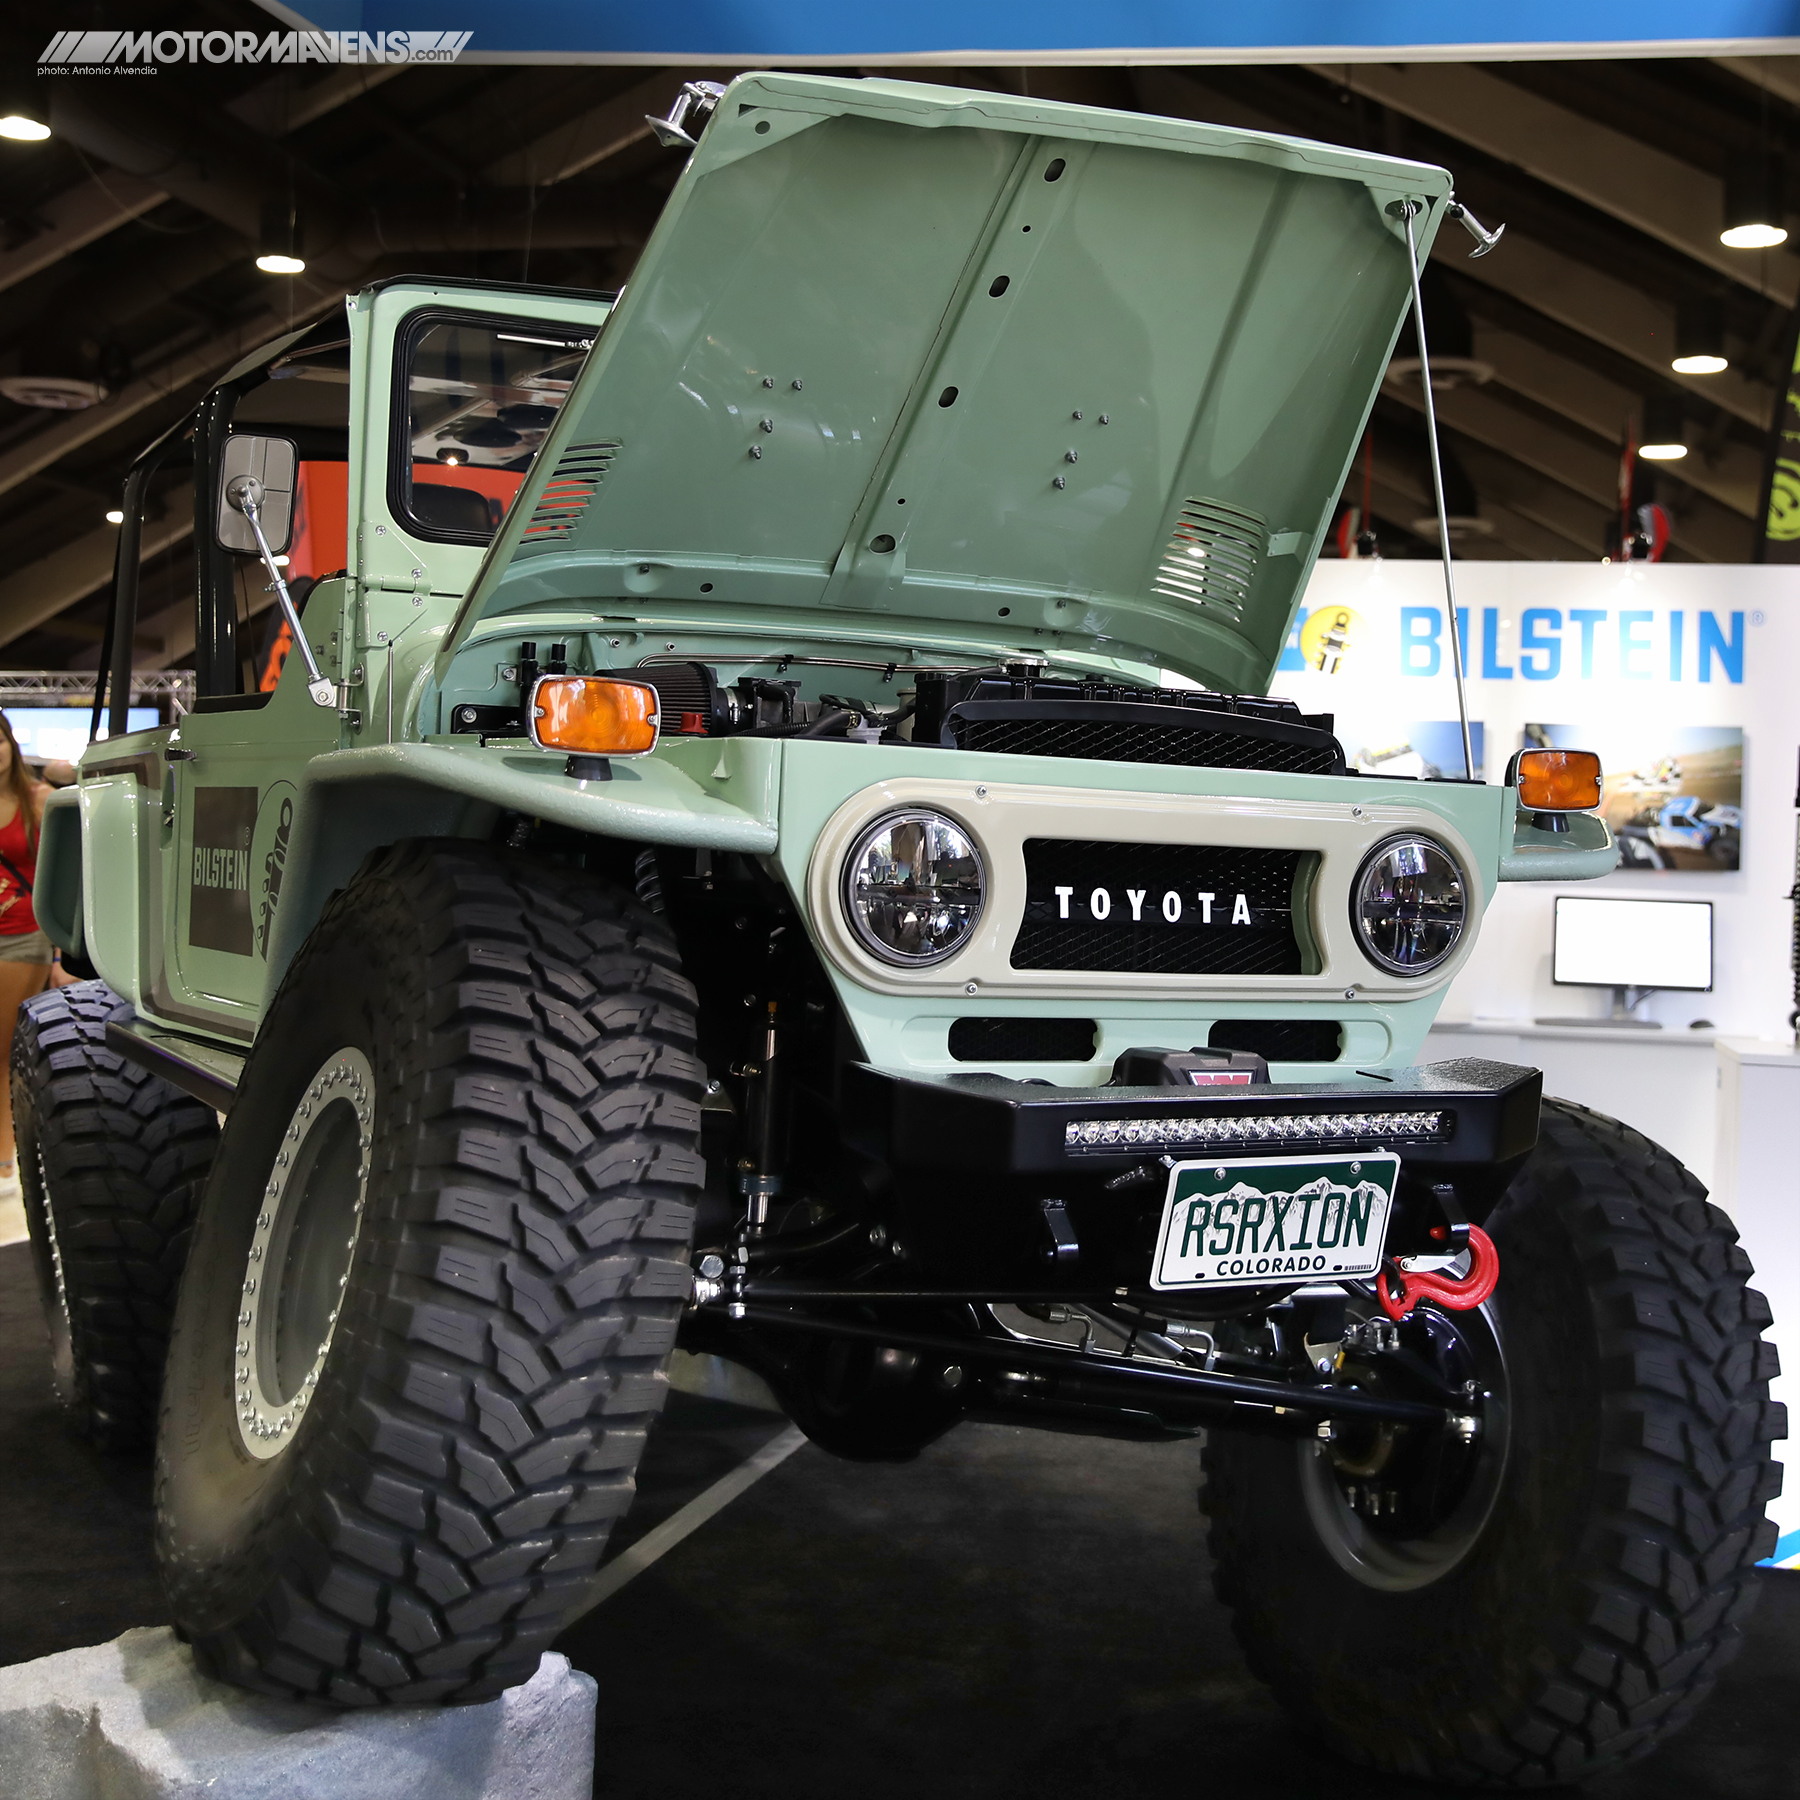 FJ40, Land Cruiser, Proffitt's Resurrection Land Cruisers, 3FE, Off Road Expo, Bilstein, Maxxis